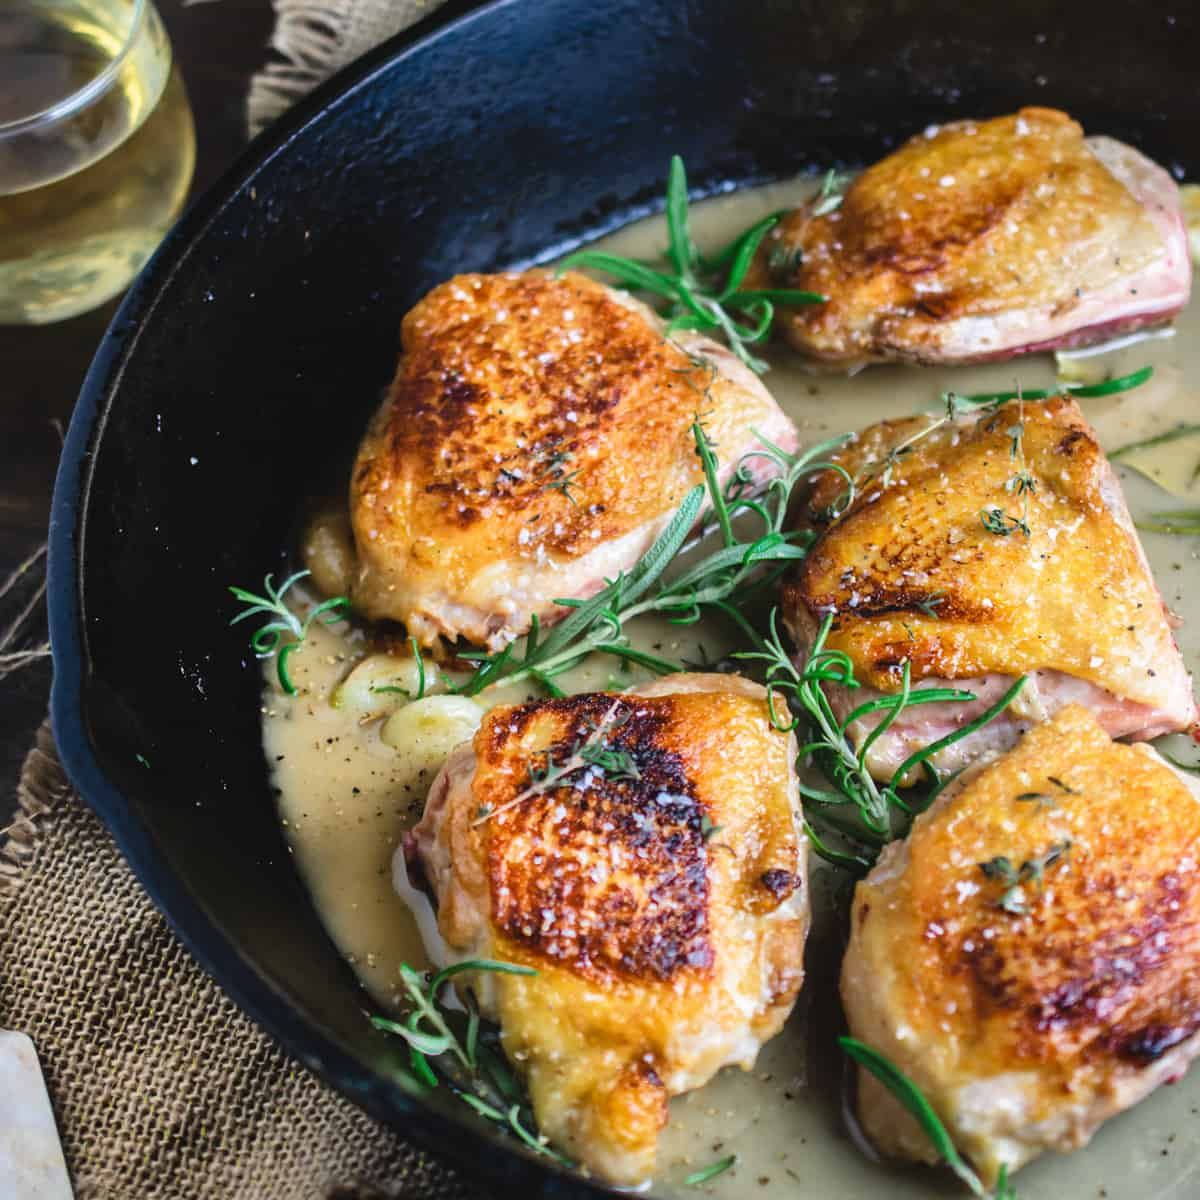 Skin on chicken with salt, herbs and a pan sauce in a cast iron skillet.